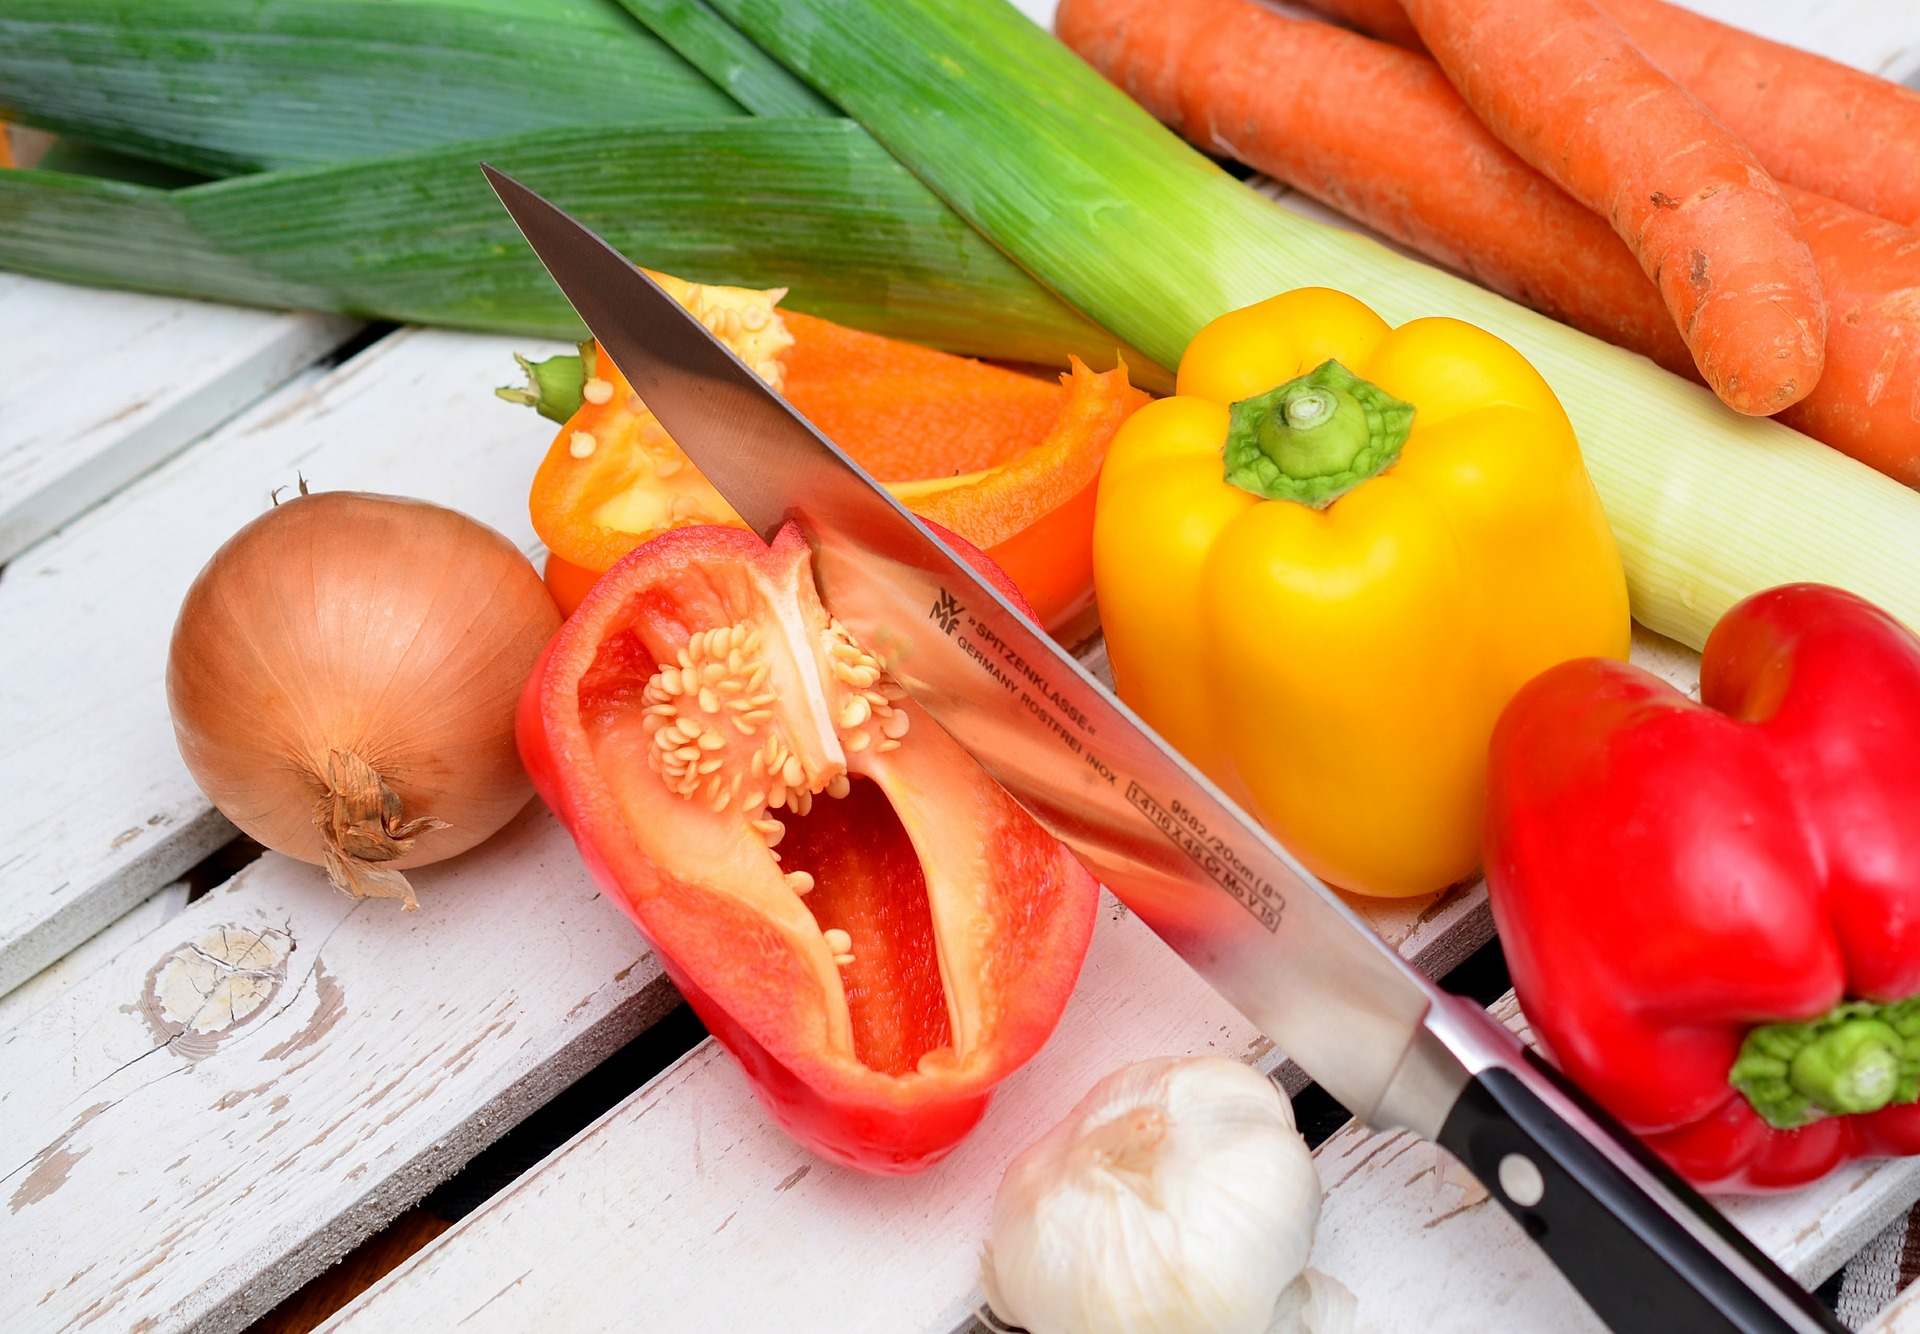 Save money on food by buying fresh vegetables and freezing them yourself